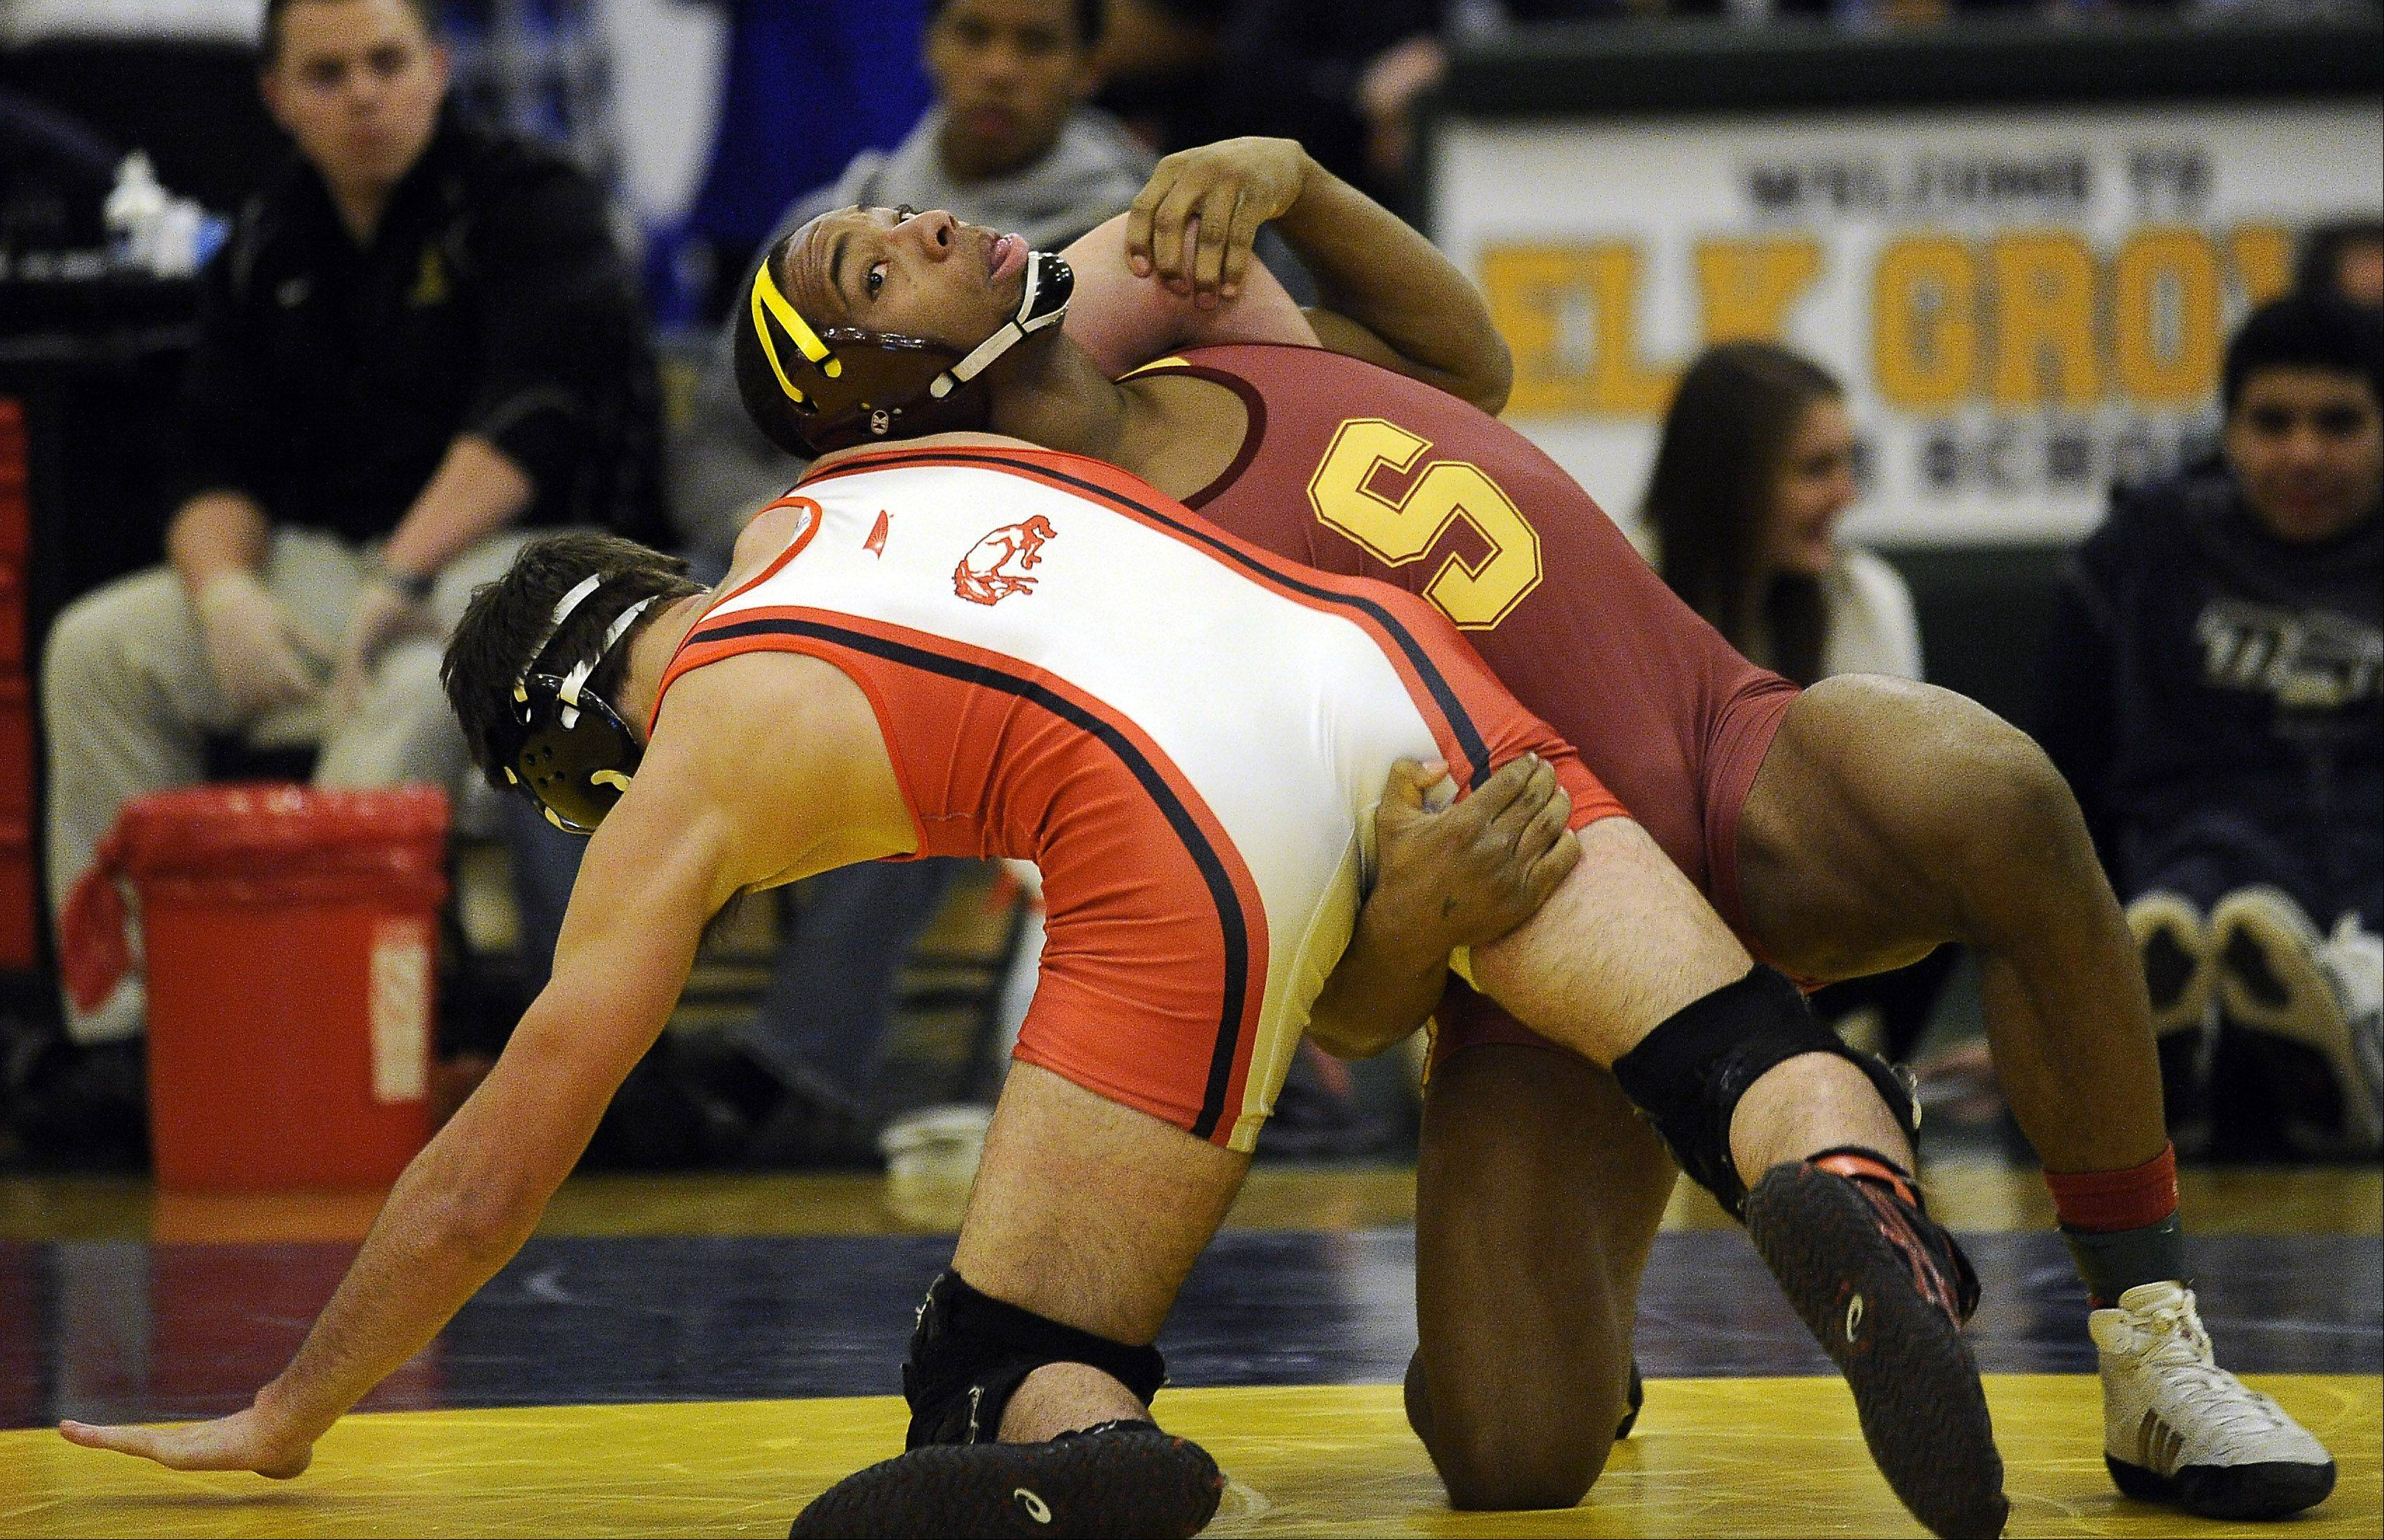 Schaumburg's Sadarriss Patterson, right, battles Barrington's Nick Shealy at 152 pounds in last year's MSL meet. Patterson was a regional champ at 160 last weekend and competes in the Maine East sectional this weekend.